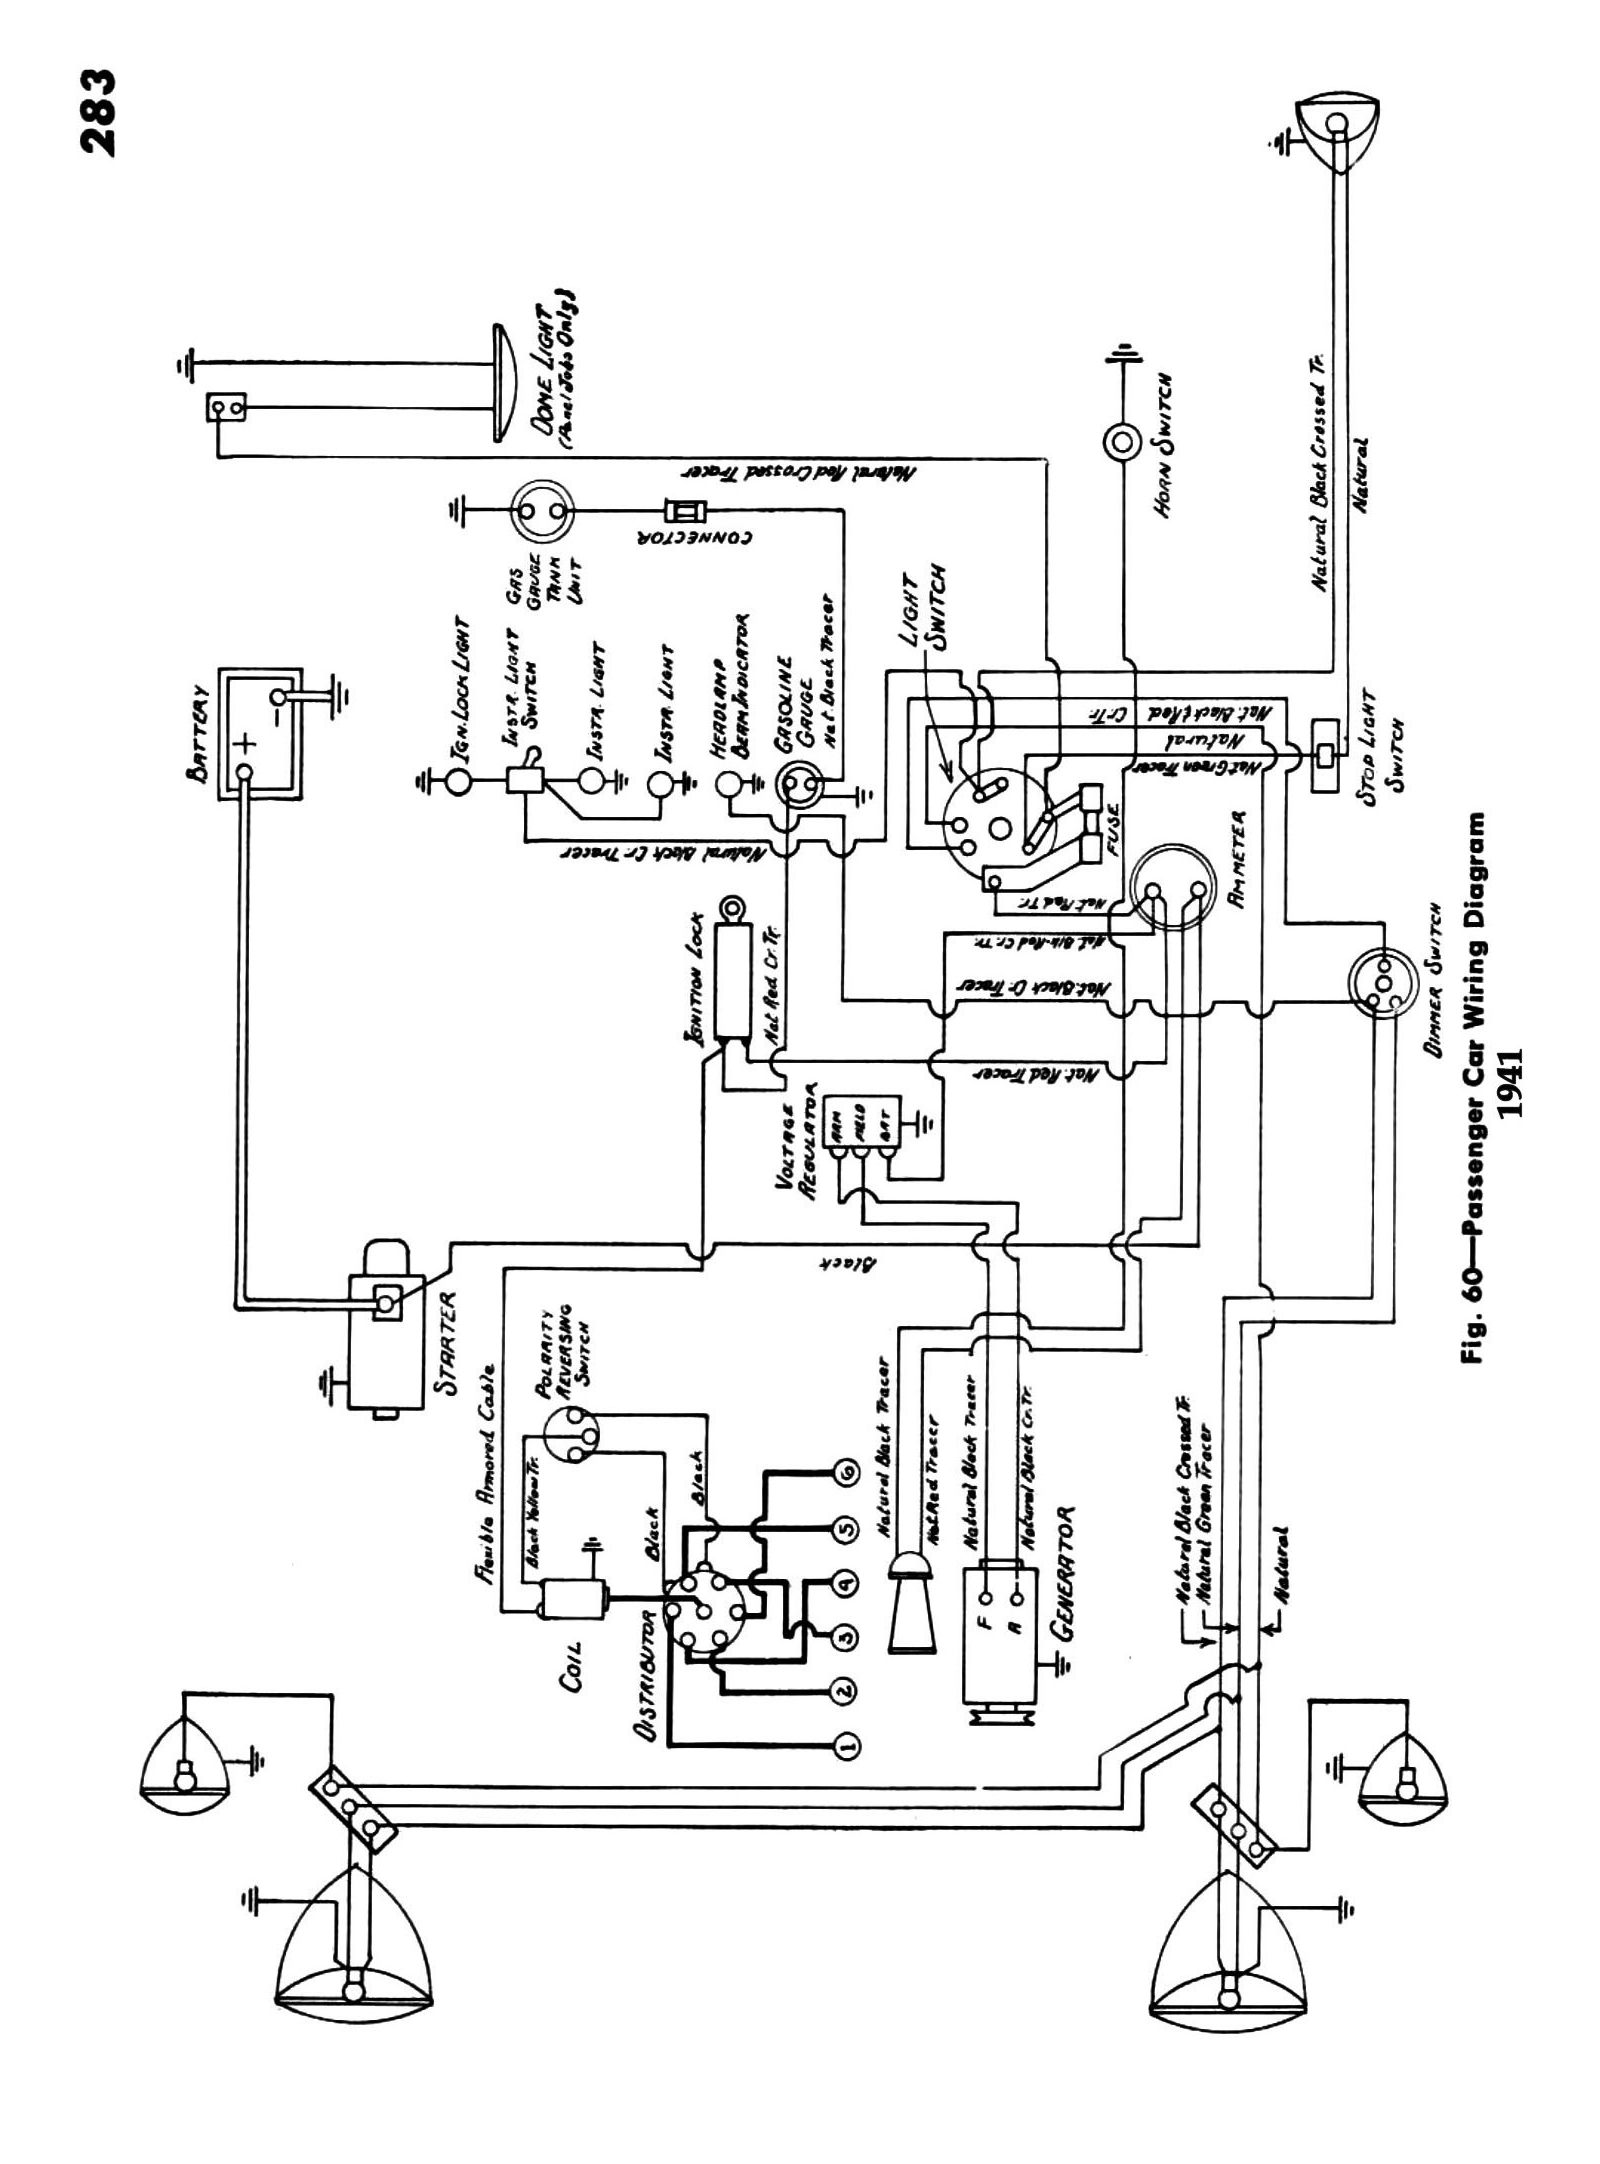 chevy wiring diagrams 1979 El Camino Fuse Diagram 1979 El Camino Fuse Diagram